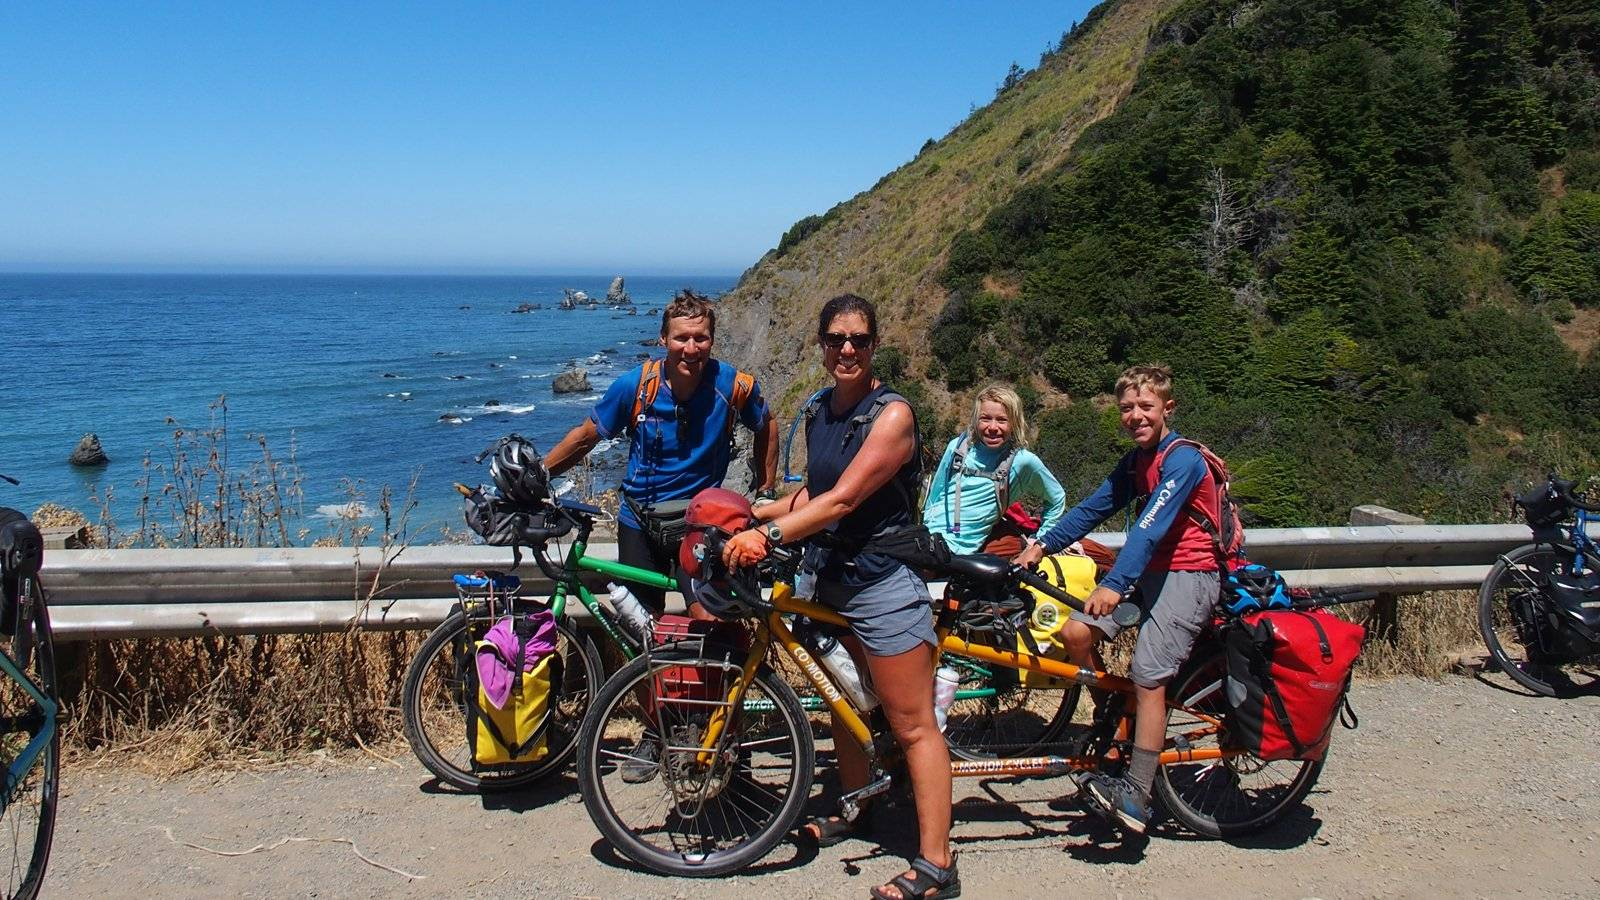 CoMotion bikes has the best tandem bikes for the whole family.